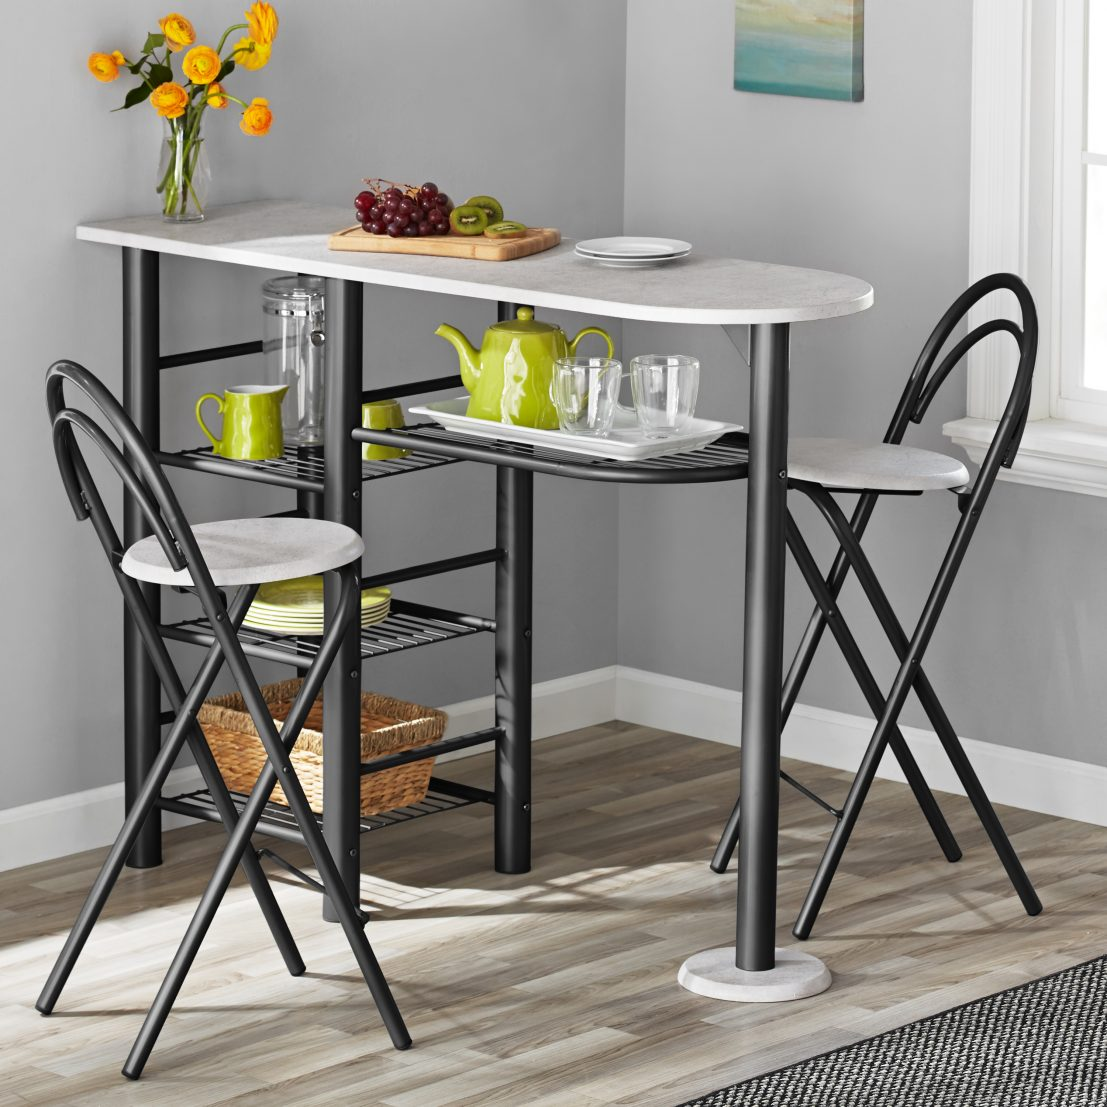 Phenomenal Mainstays 3 Piece Brooklyn Counter Height Dining Set For Machost Co Dining Chair Design Ideas Machostcouk